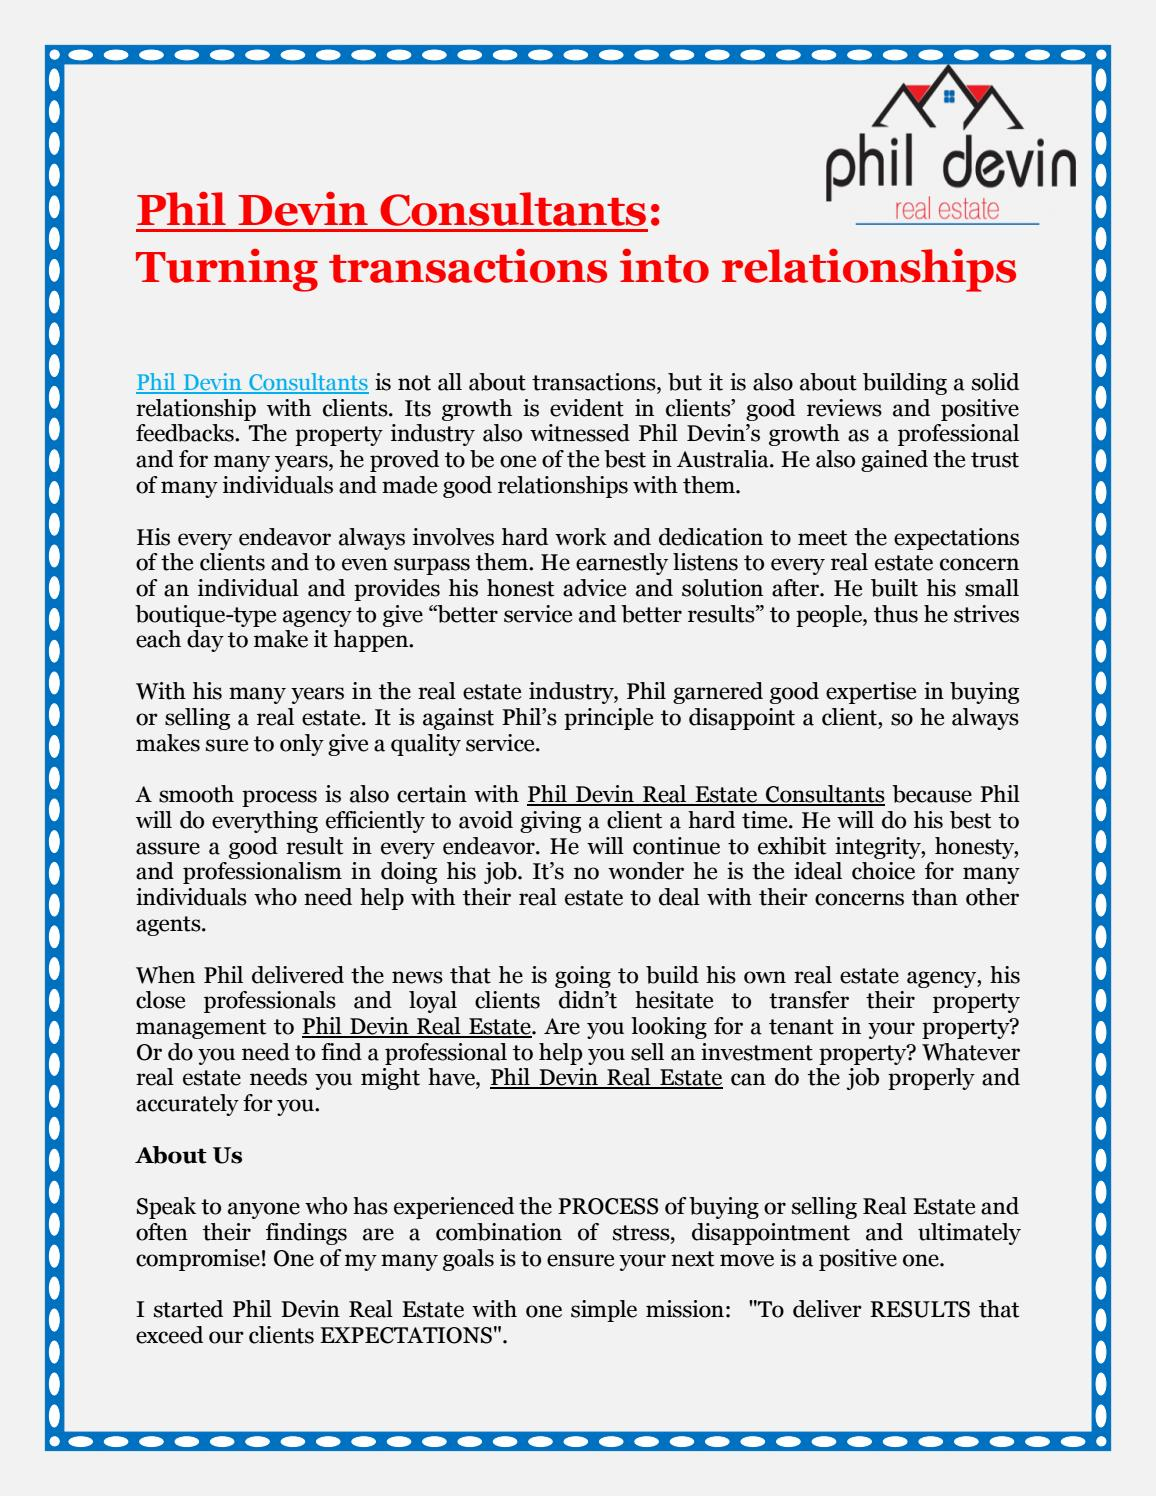 Phil Devin Consultants: Turning transactions into